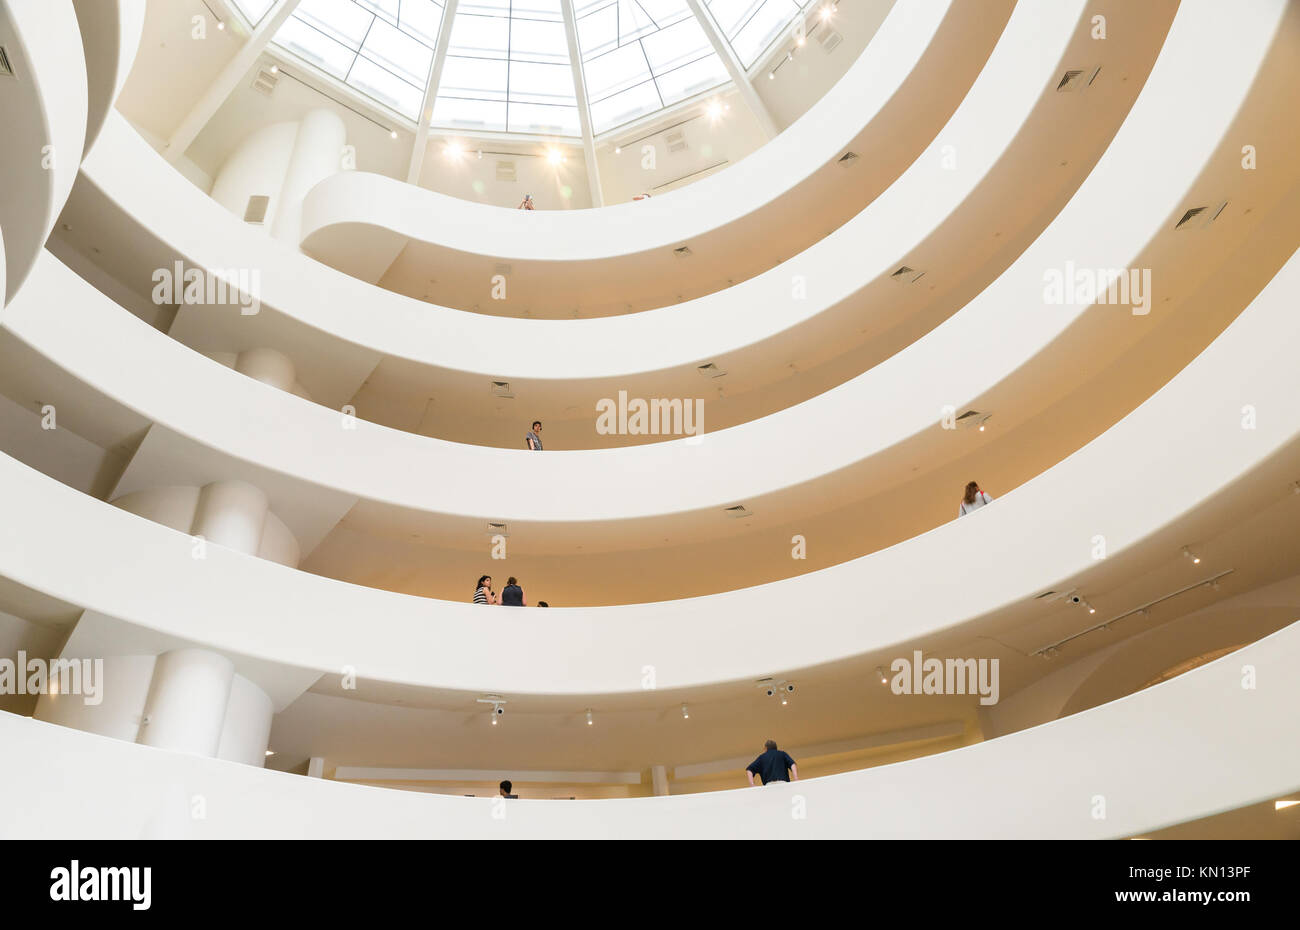 NEW YORK CITY - JULY 10: Interior of the Solomon R. Guggenheim Museum of modern and contemporary art in New York - Stock Image